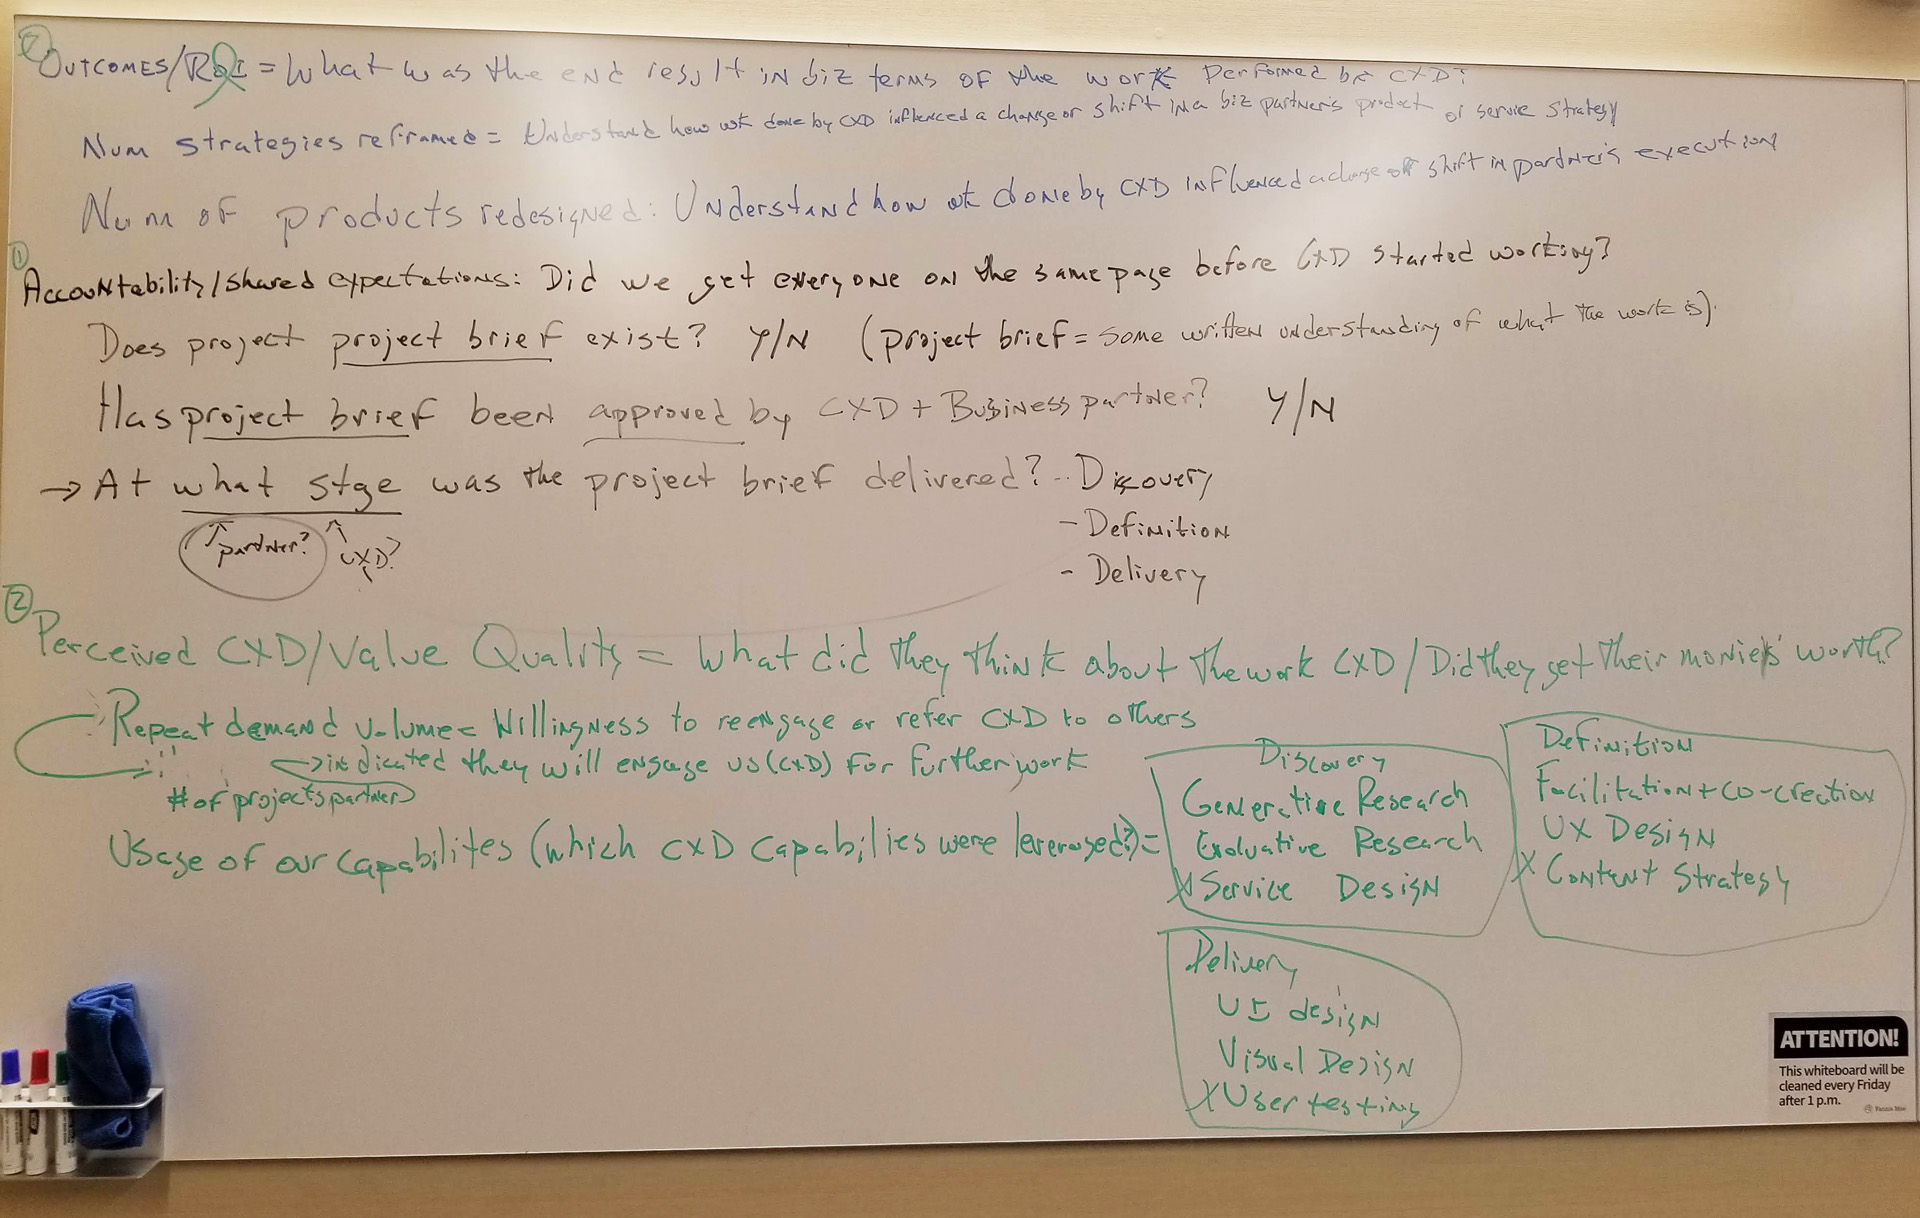 Photo of a white board